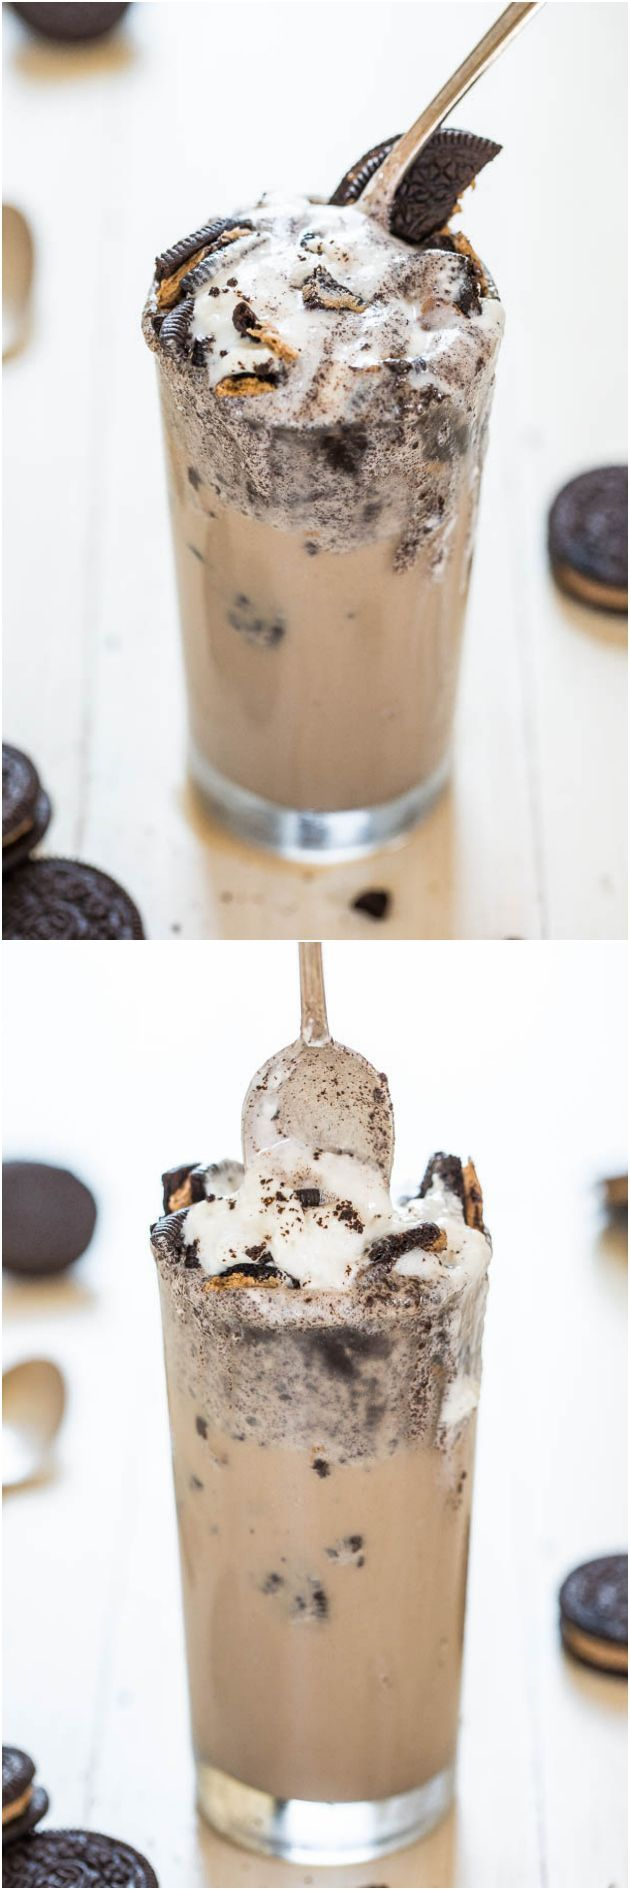 Lightened Up Cookies and Cream Mocha Milkshake - Iced coffee blended with ice cream is so darn good!! And it's lighter, even better!